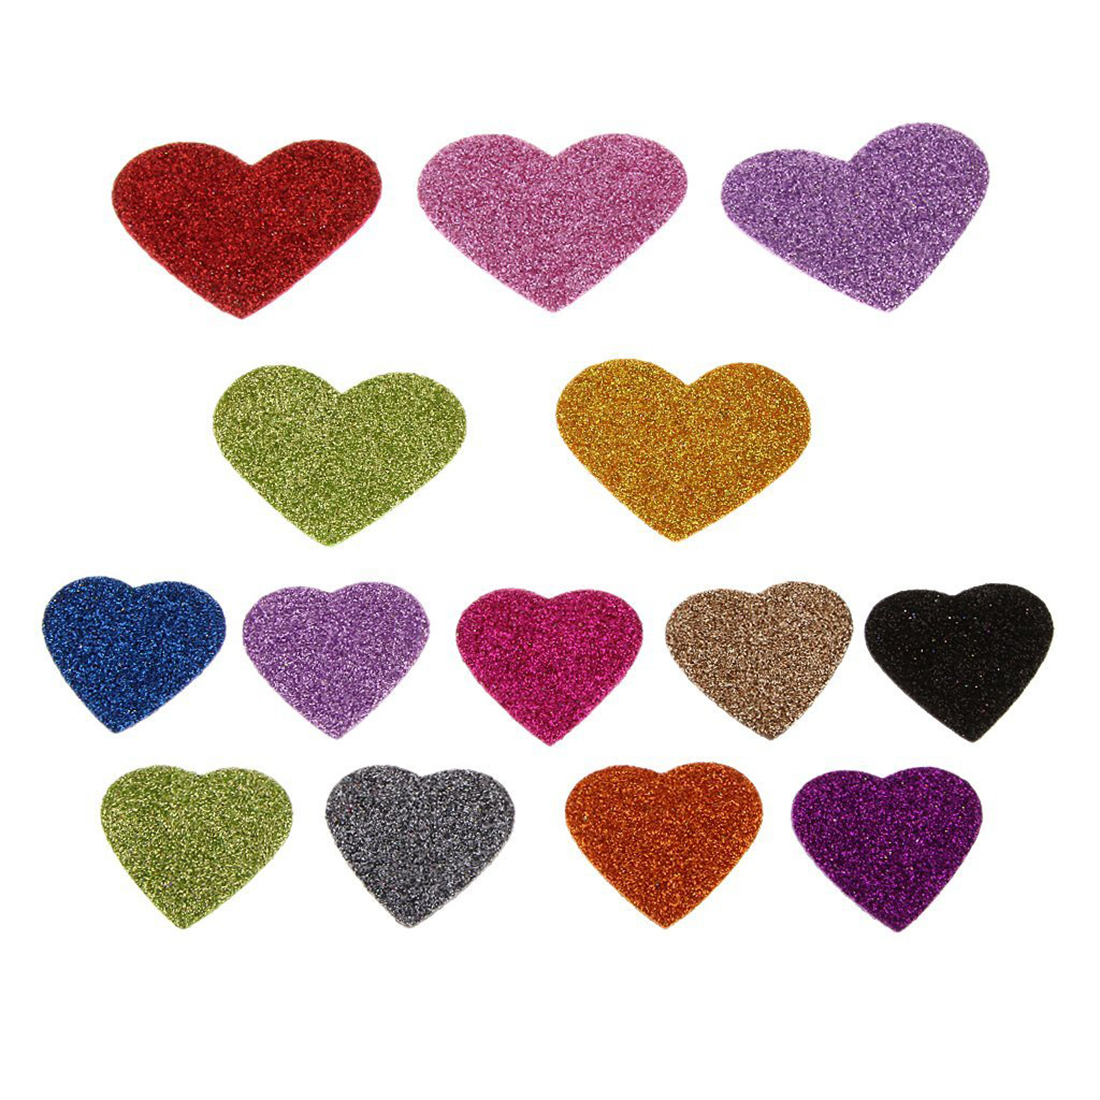 Pack Of 50 Pcs Glitter Foam Heart Shape Mixed Self Adhesive Sticker For Kids Crafting Other Craft